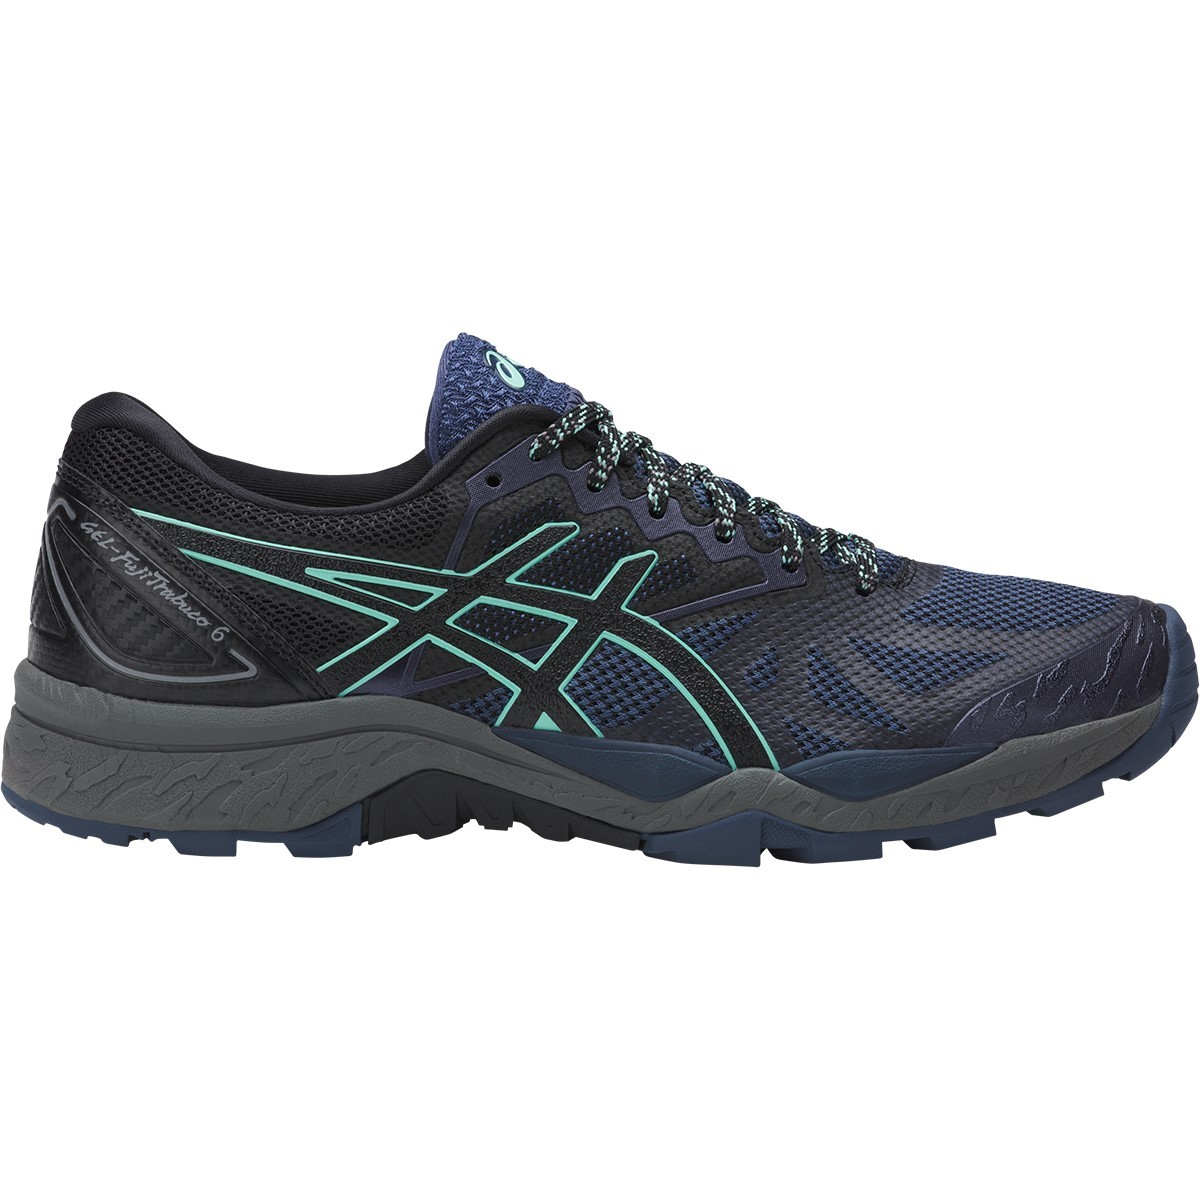 asics gel fuji trabuco 6 womens trail running shoes insignia blue black ice green online. Black Bedroom Furniture Sets. Home Design Ideas